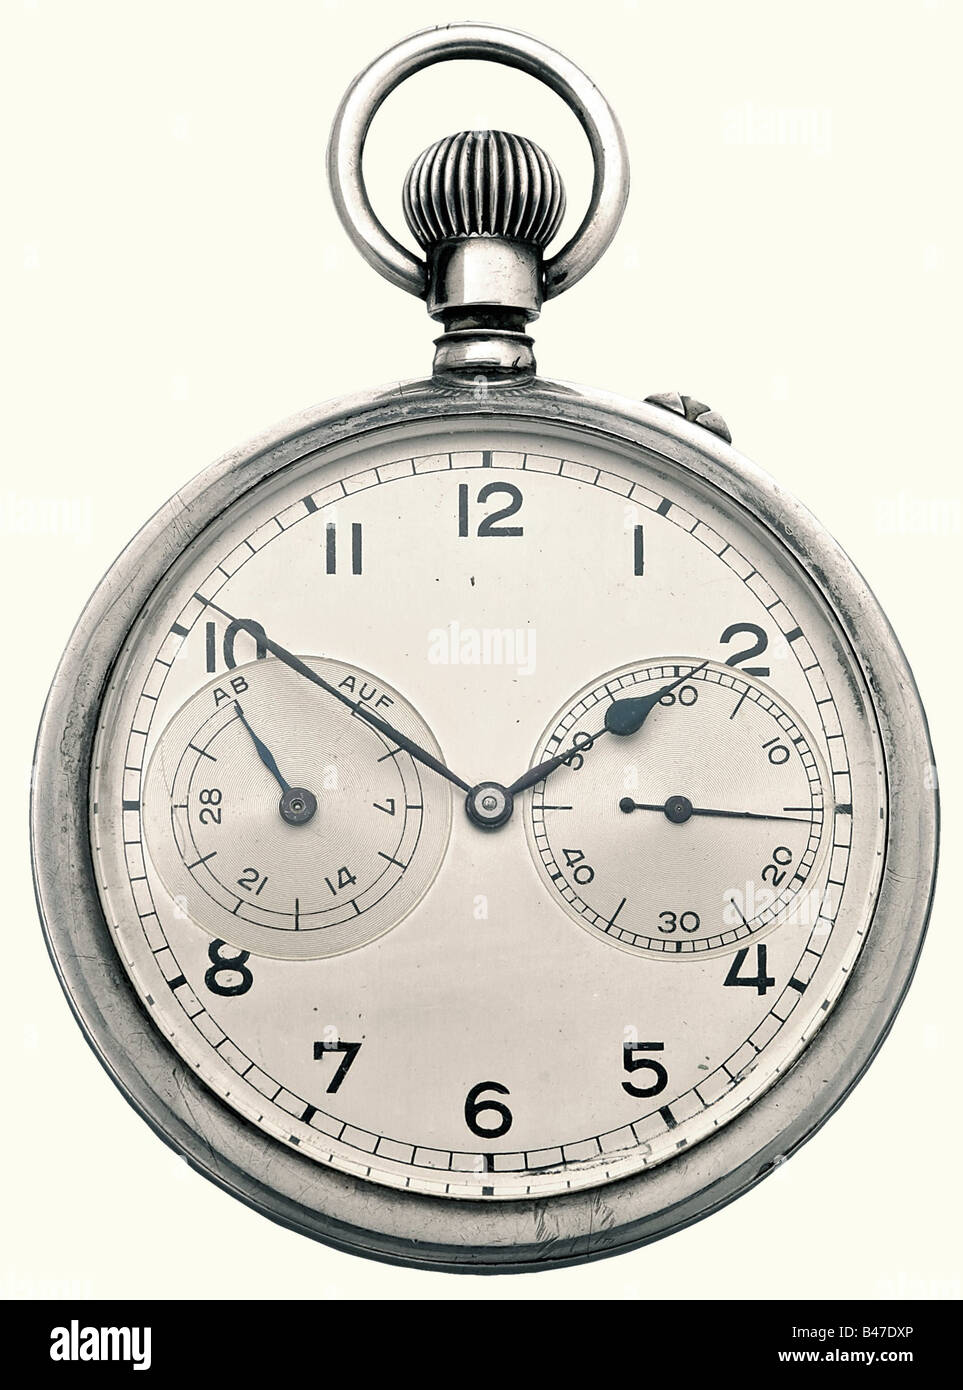 A chronometer, silver case, calibre 48. Silver-plated dial. Blued hands, power reserve indicator, and small second - Stock Image